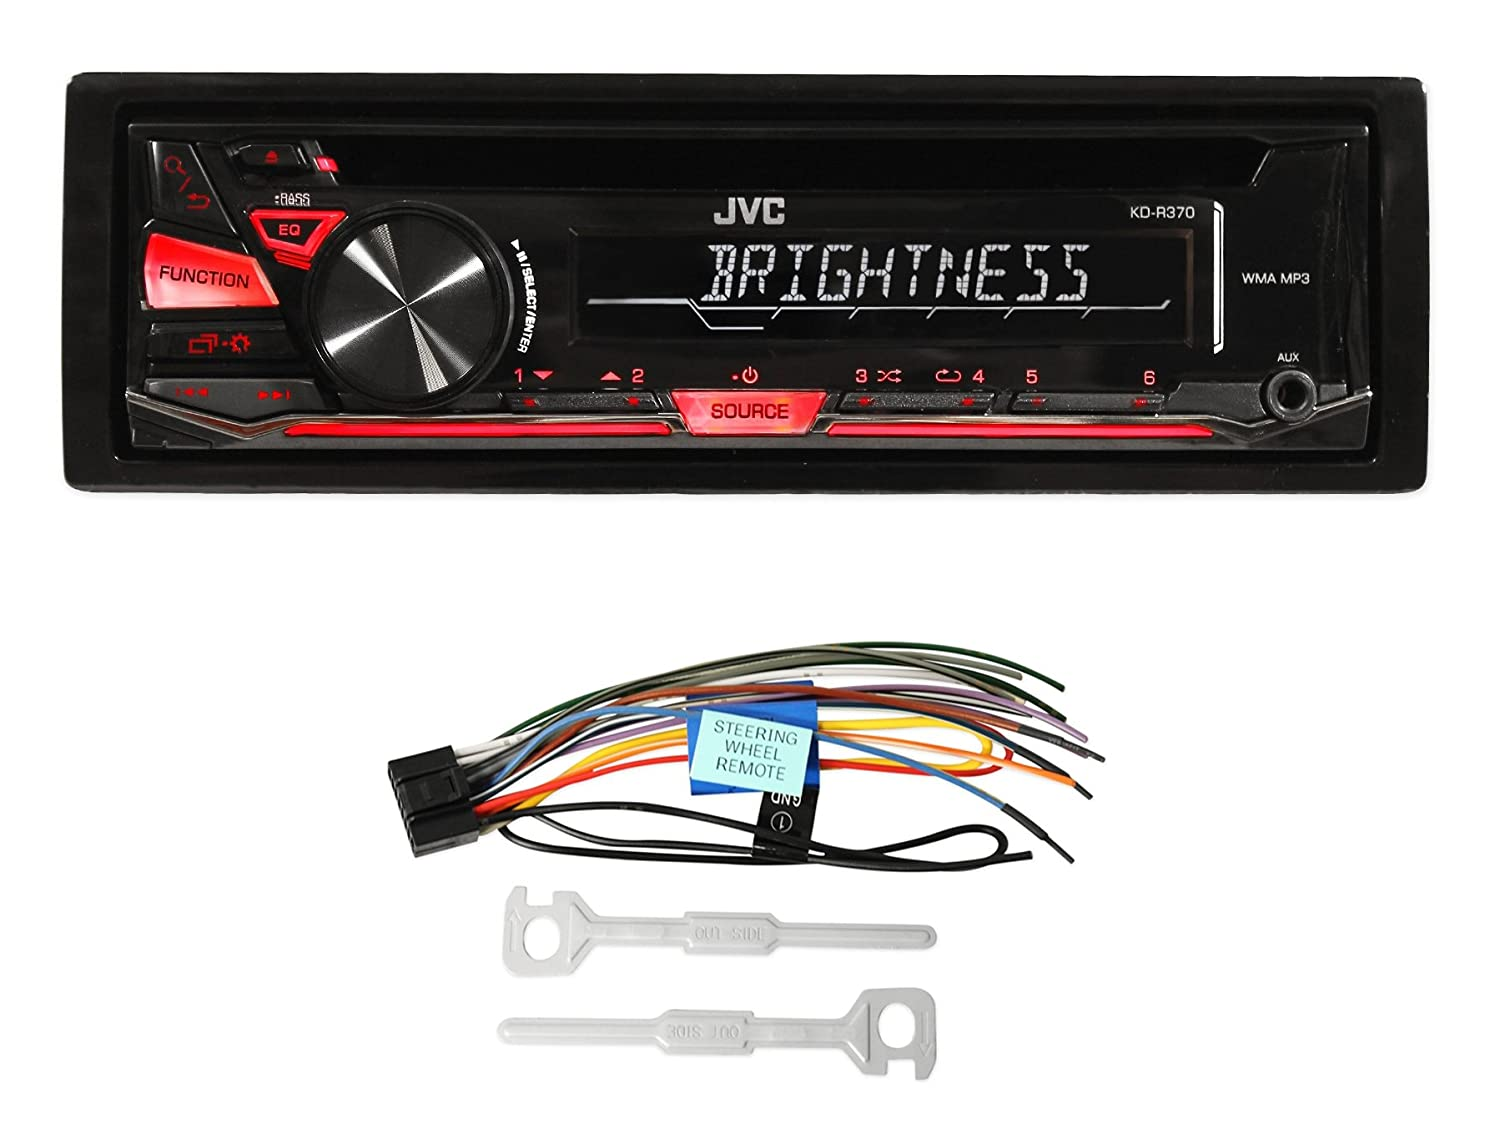 Jvc Stereo Cd Player Radio Kicker Speakers Full Install Chrysler Din Wiring For Pins 97 02 Jeep Wrangler Automotive